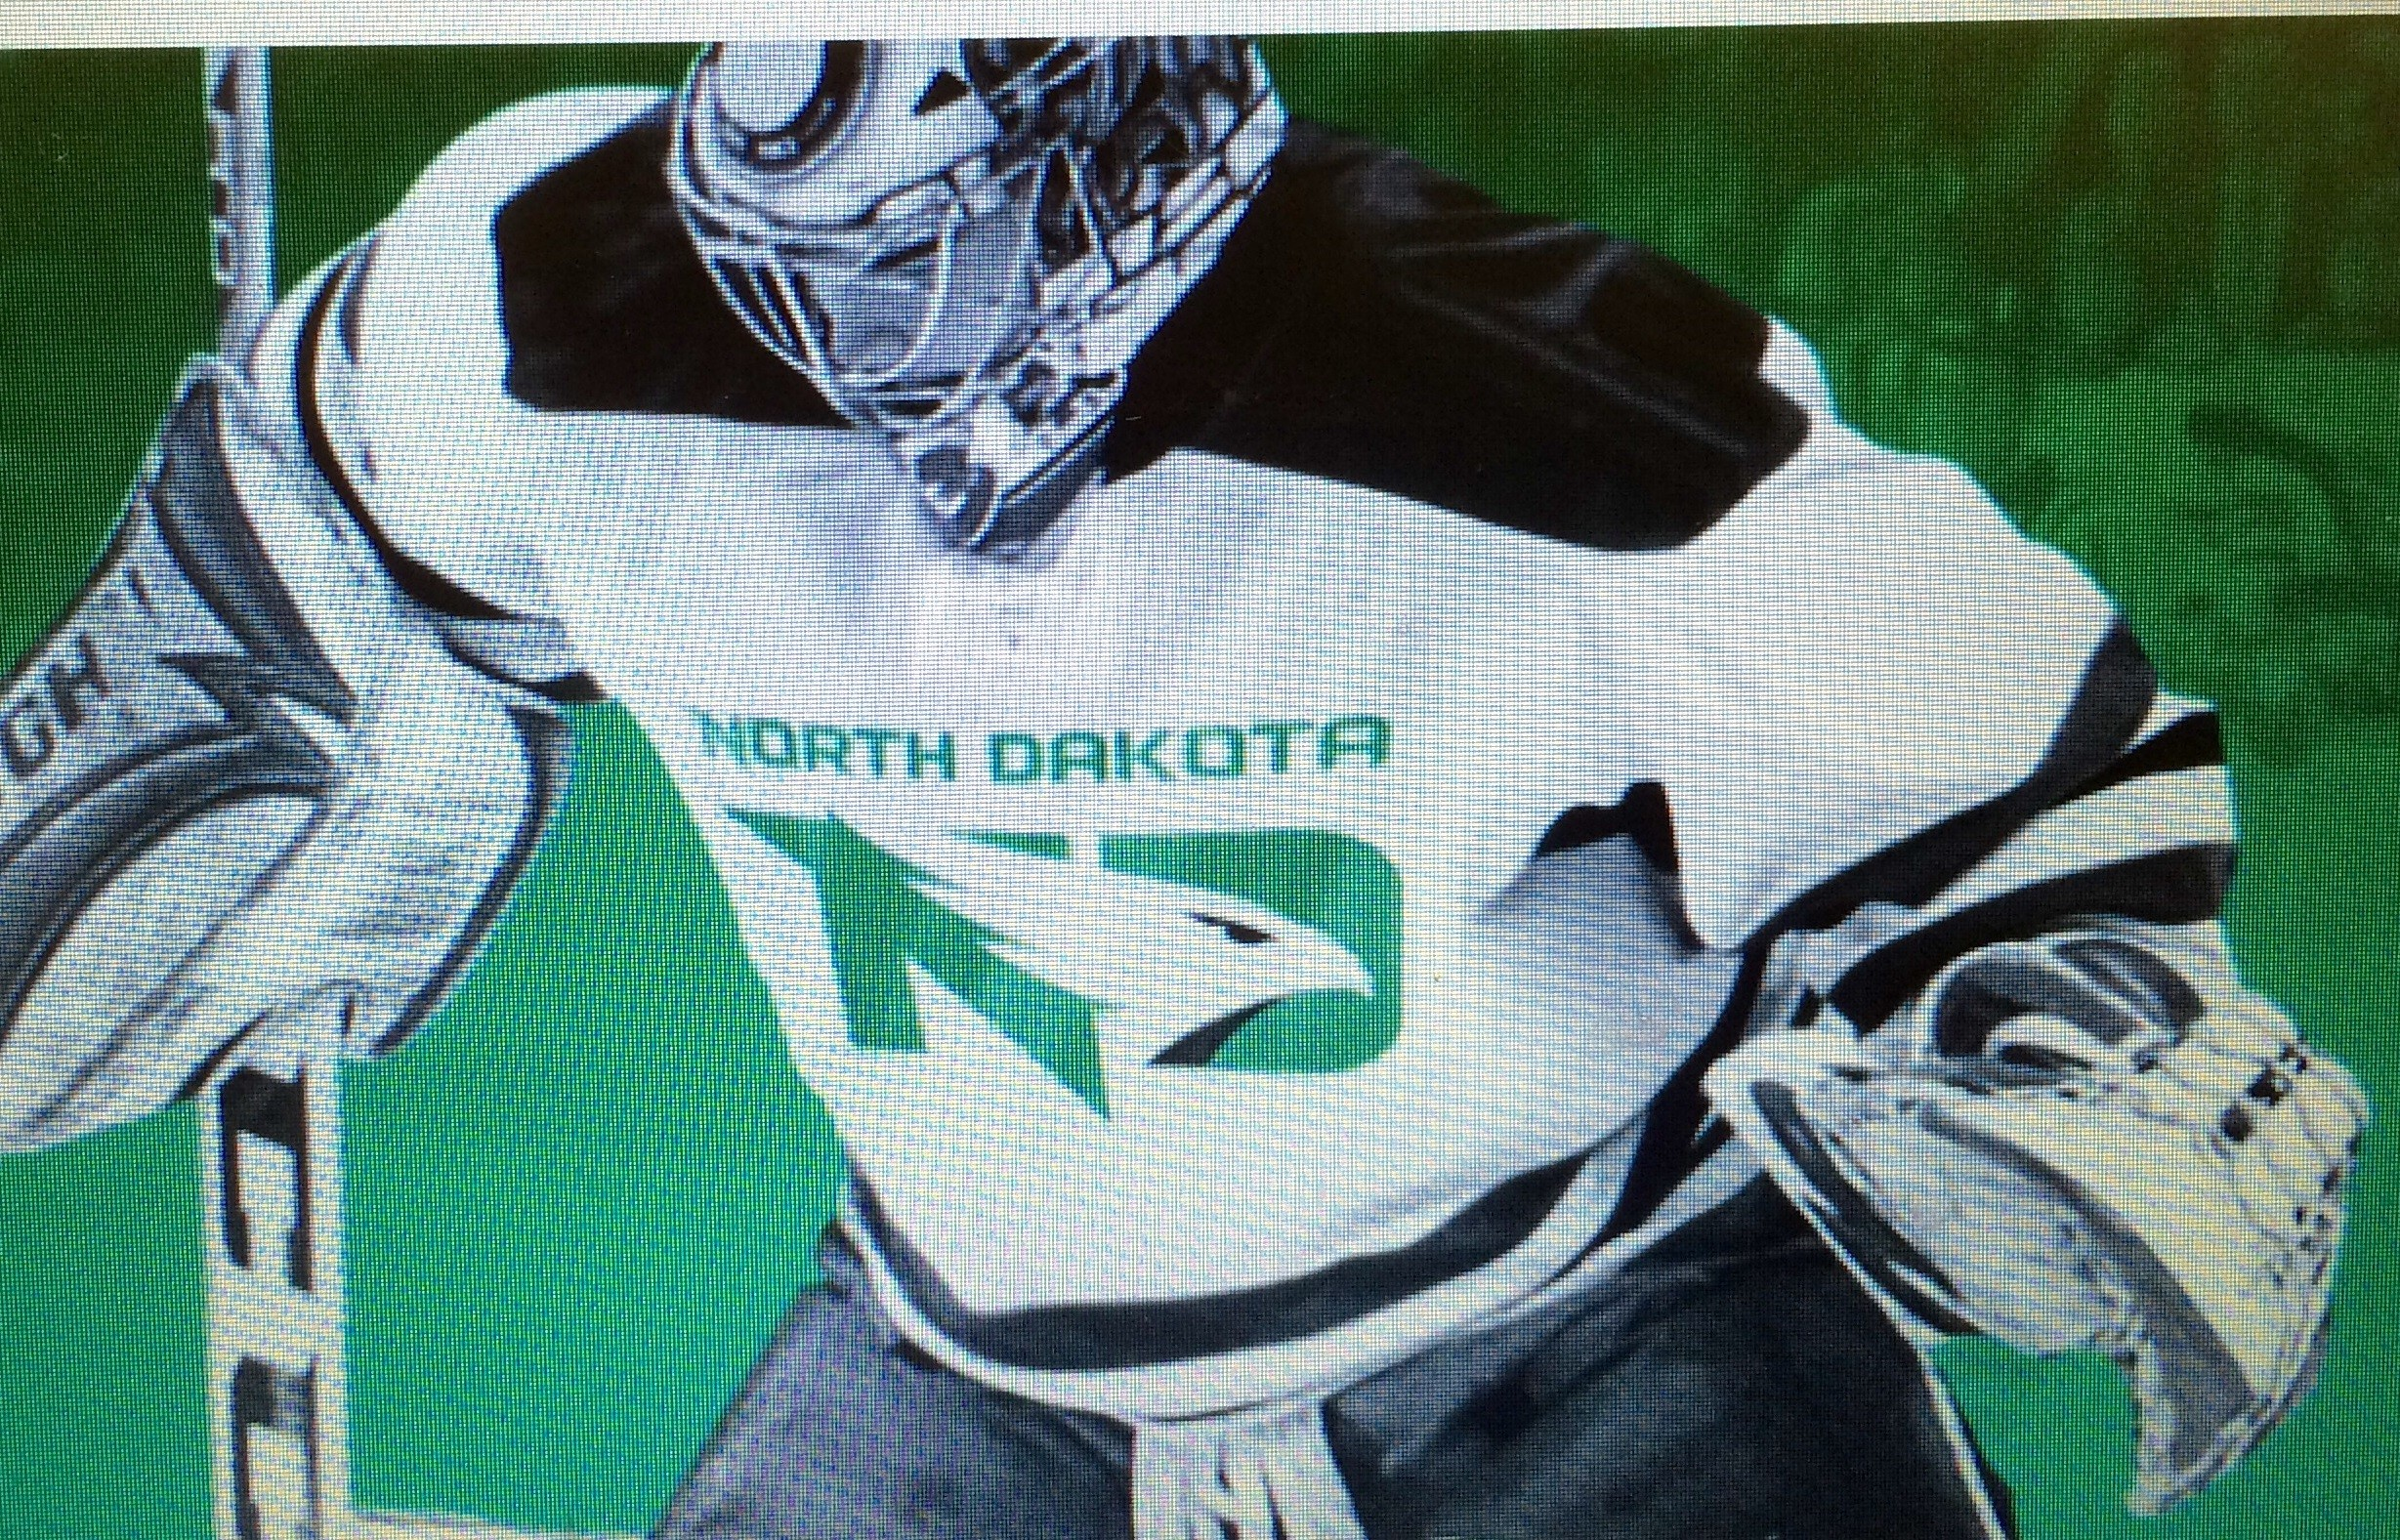 Res: 2457x1577, UND The University of North Dakota's new Fighting Hawks logo is shown on a  hockey jersey.